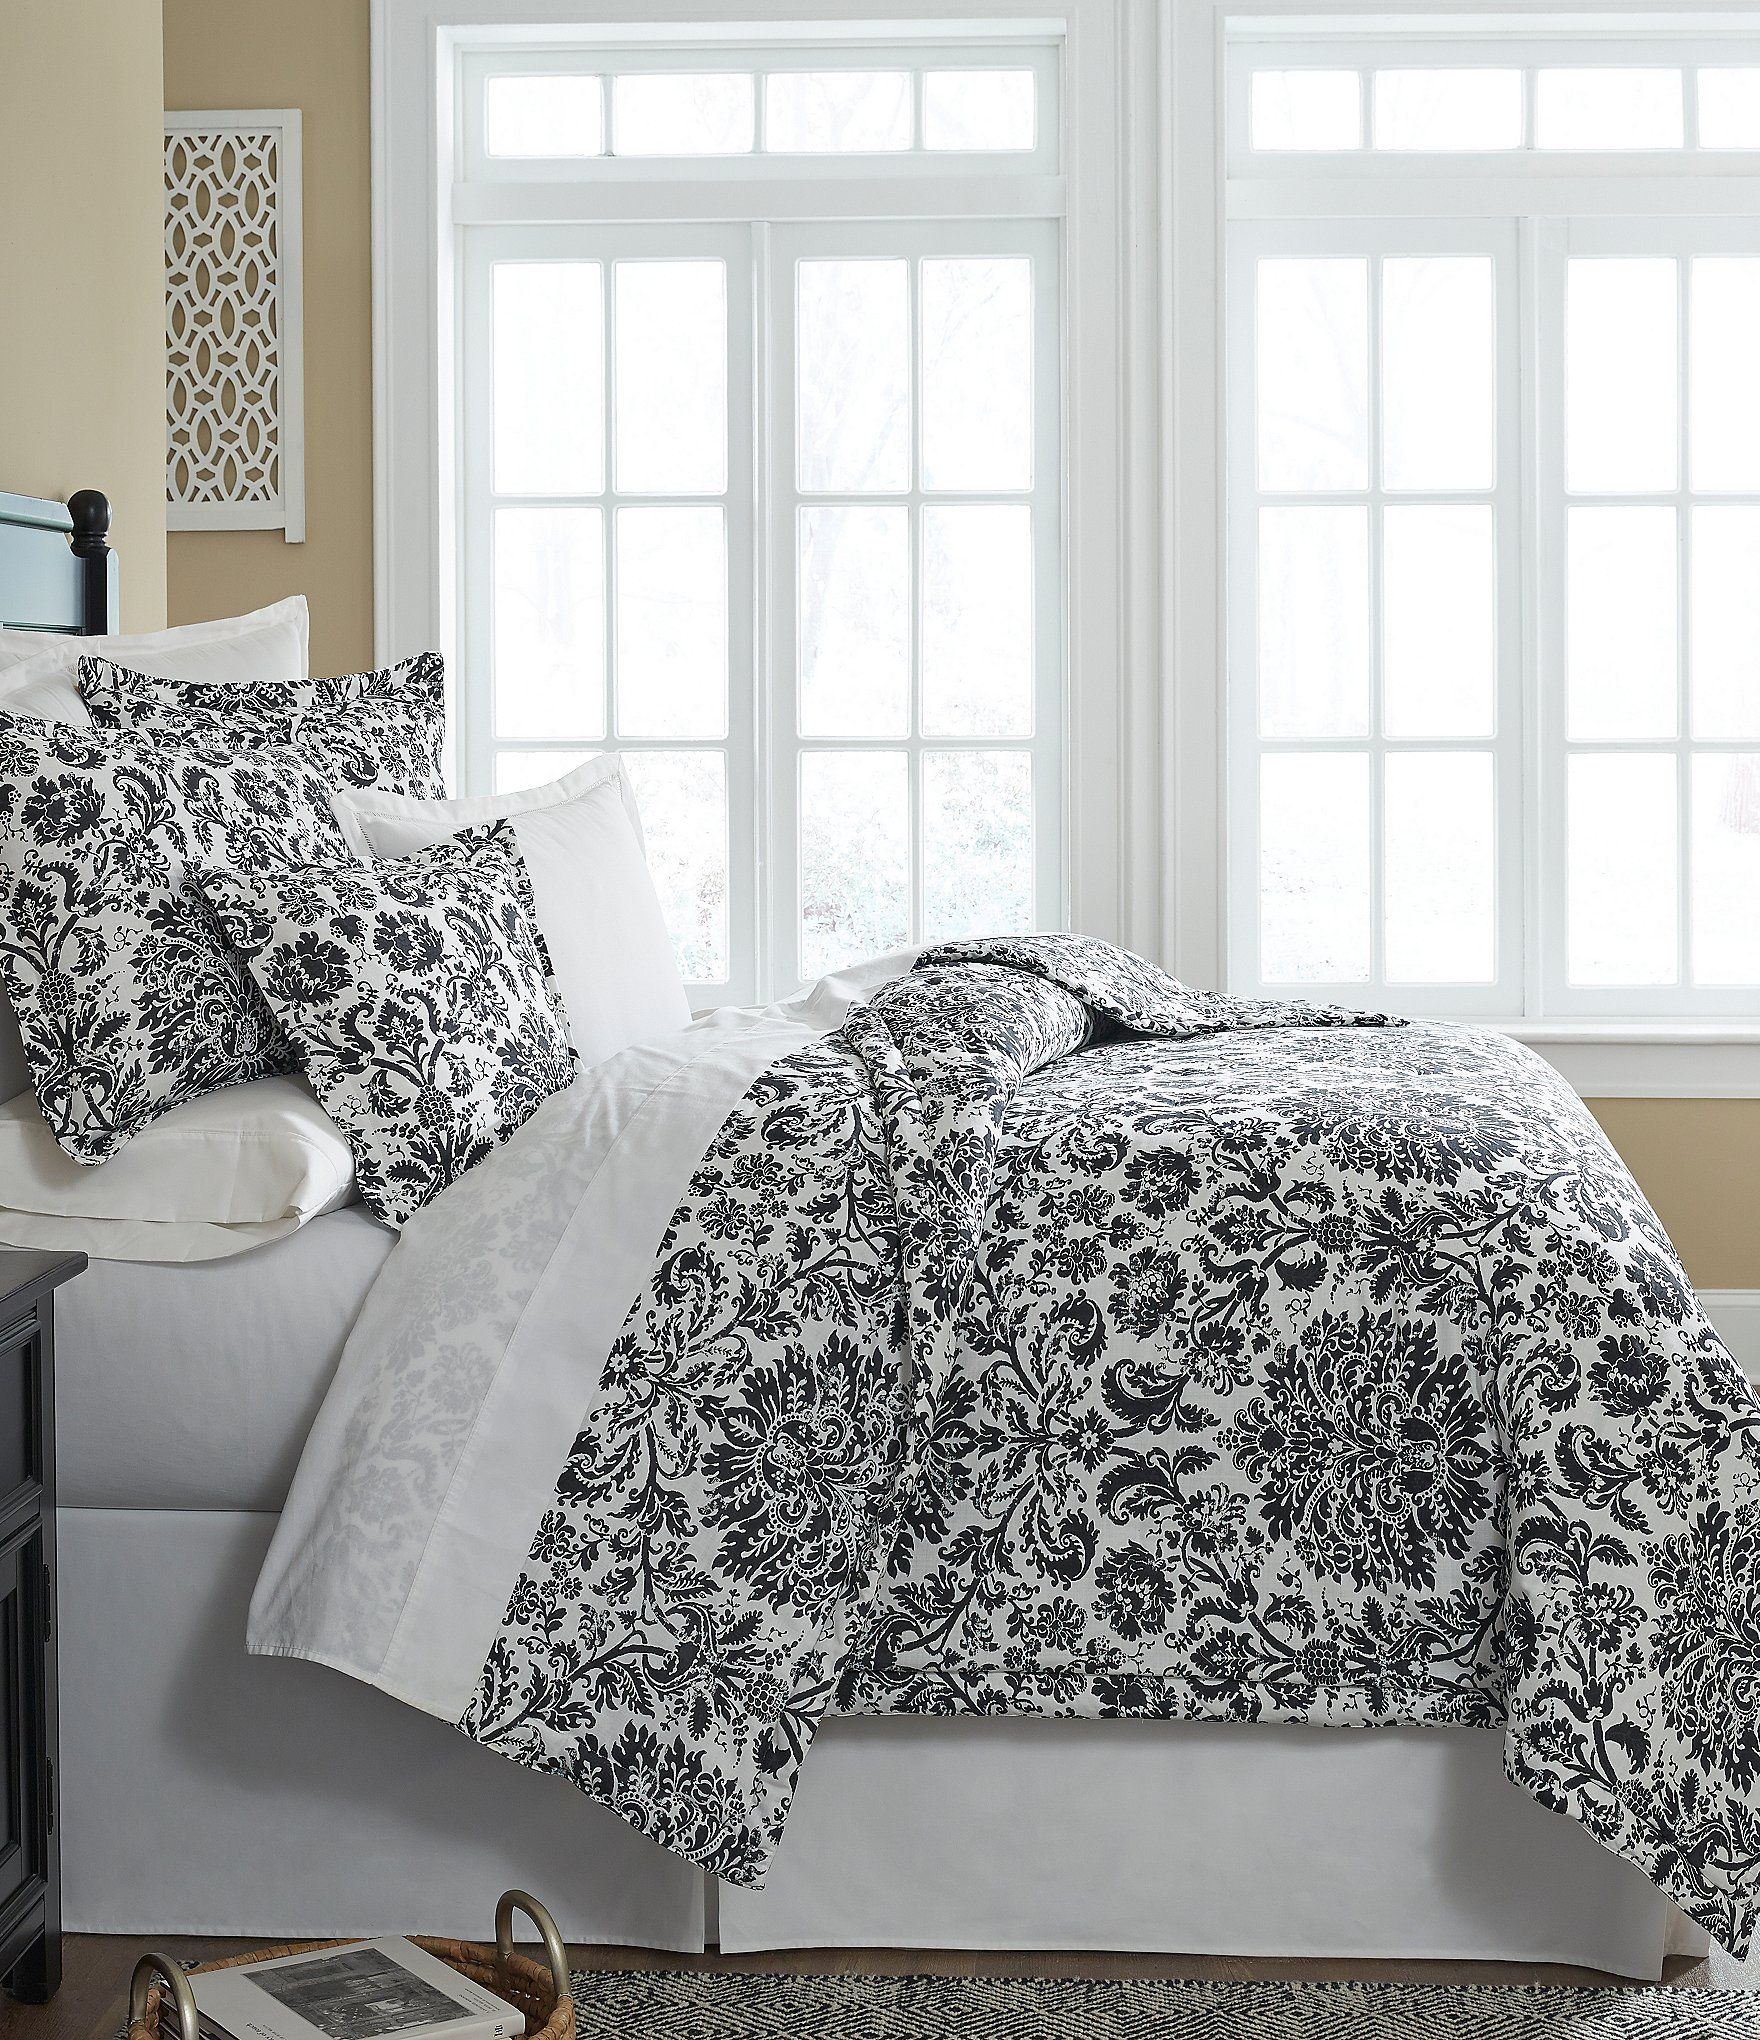 covers set dept bedding bed sets comforter blue rugs dena white quality window valances duvet size comforters duvets collections living and drapes kate target coverlet cover bathroom large dillards down sale crib of black zi bumper multi kitchen macys home curtains gold southern spade